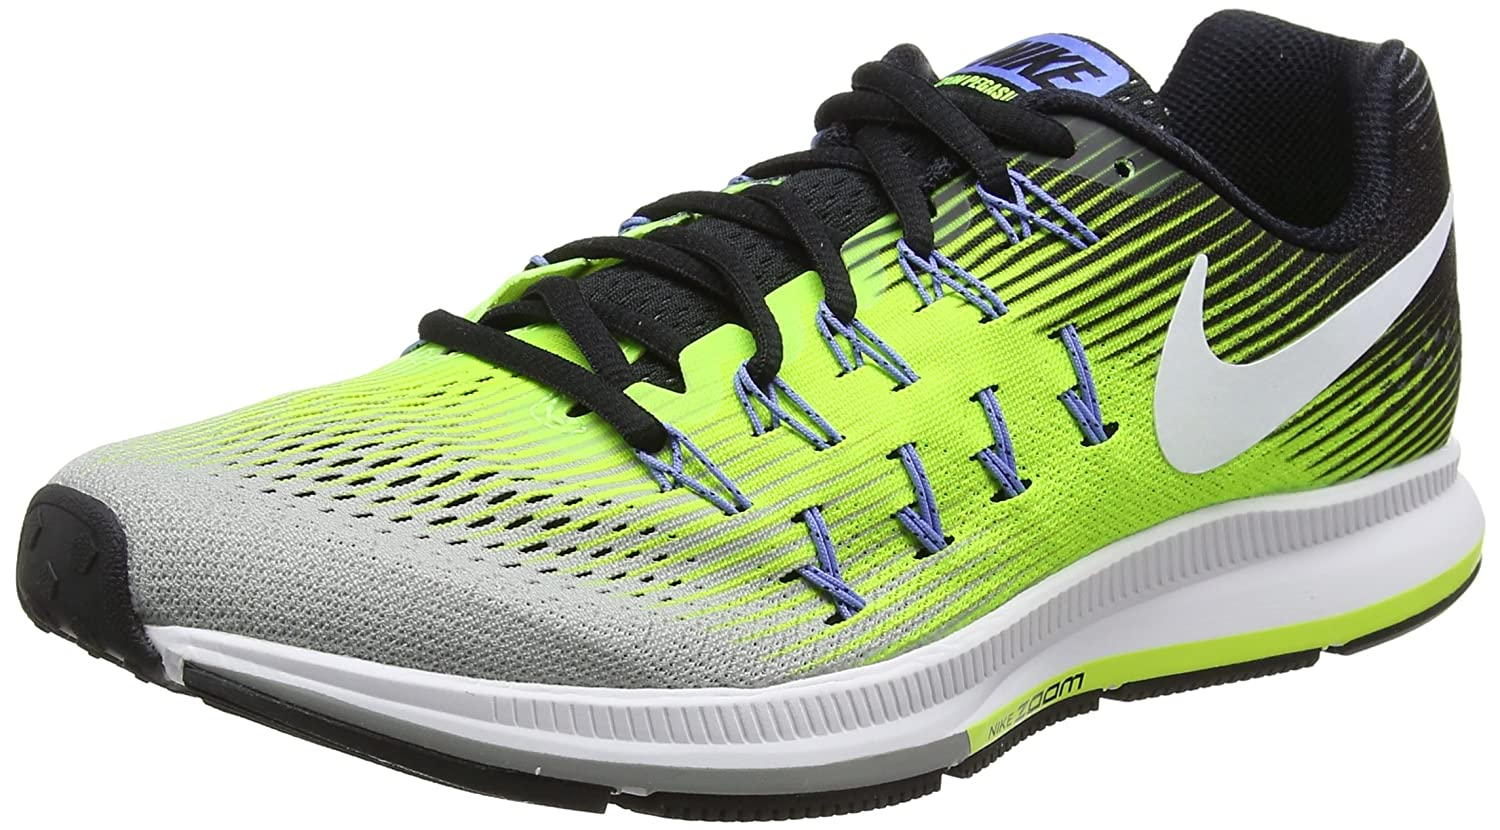 Nike Men's Air Zoom Pegasus 33 B01H2ME2U2 9.5 D(M) US|Matte Silver/White-volt-black